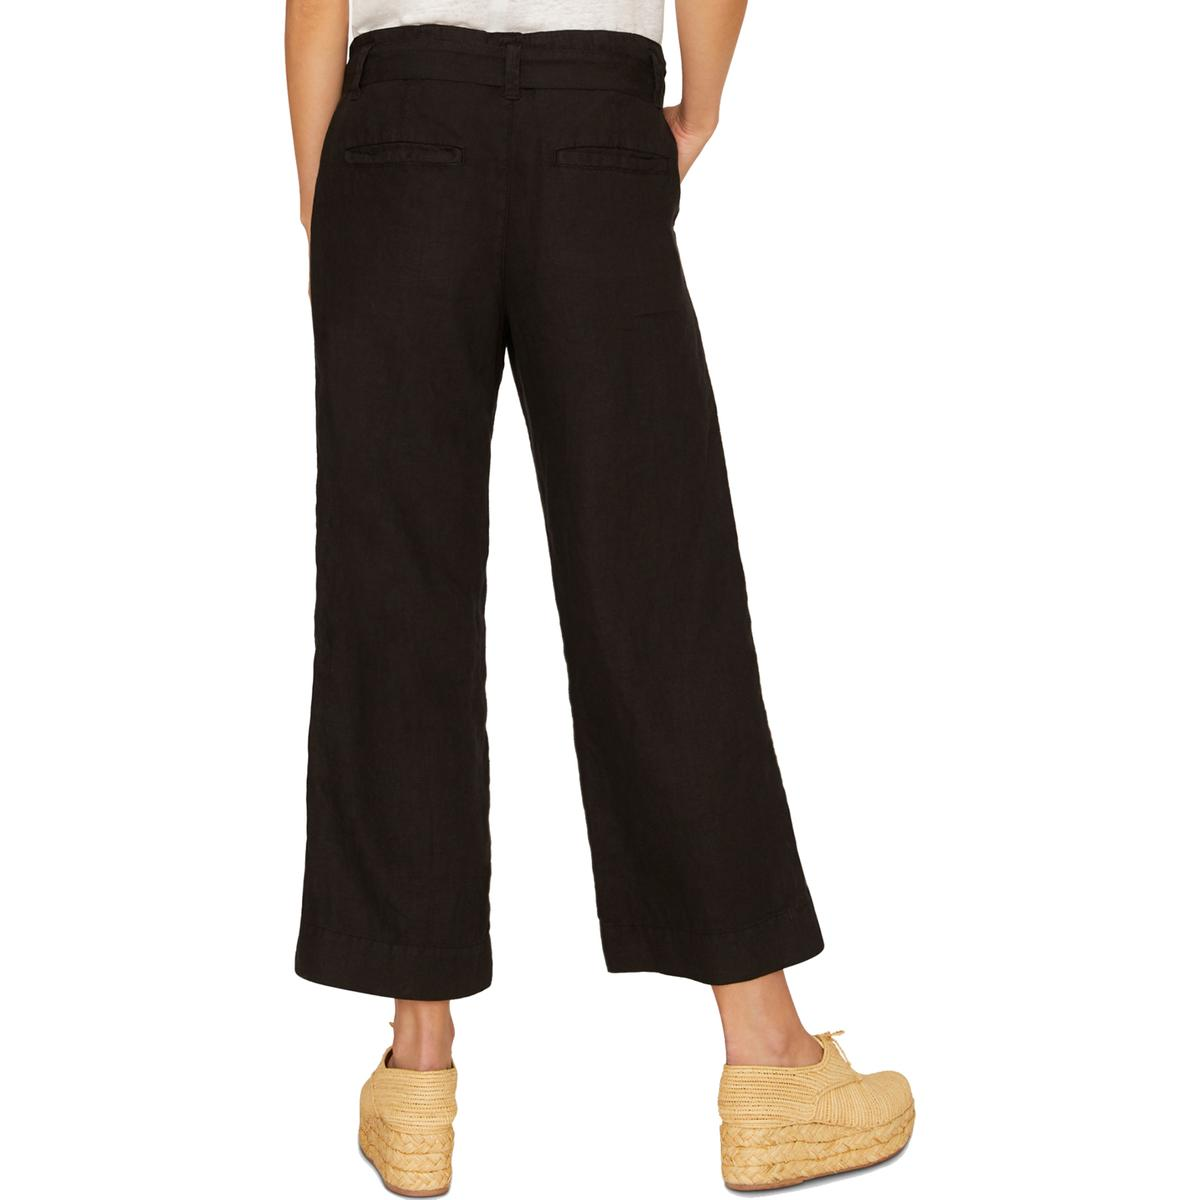 Sanctuary Womens Inland Linen Cropped Casual Pants BHFO 8460